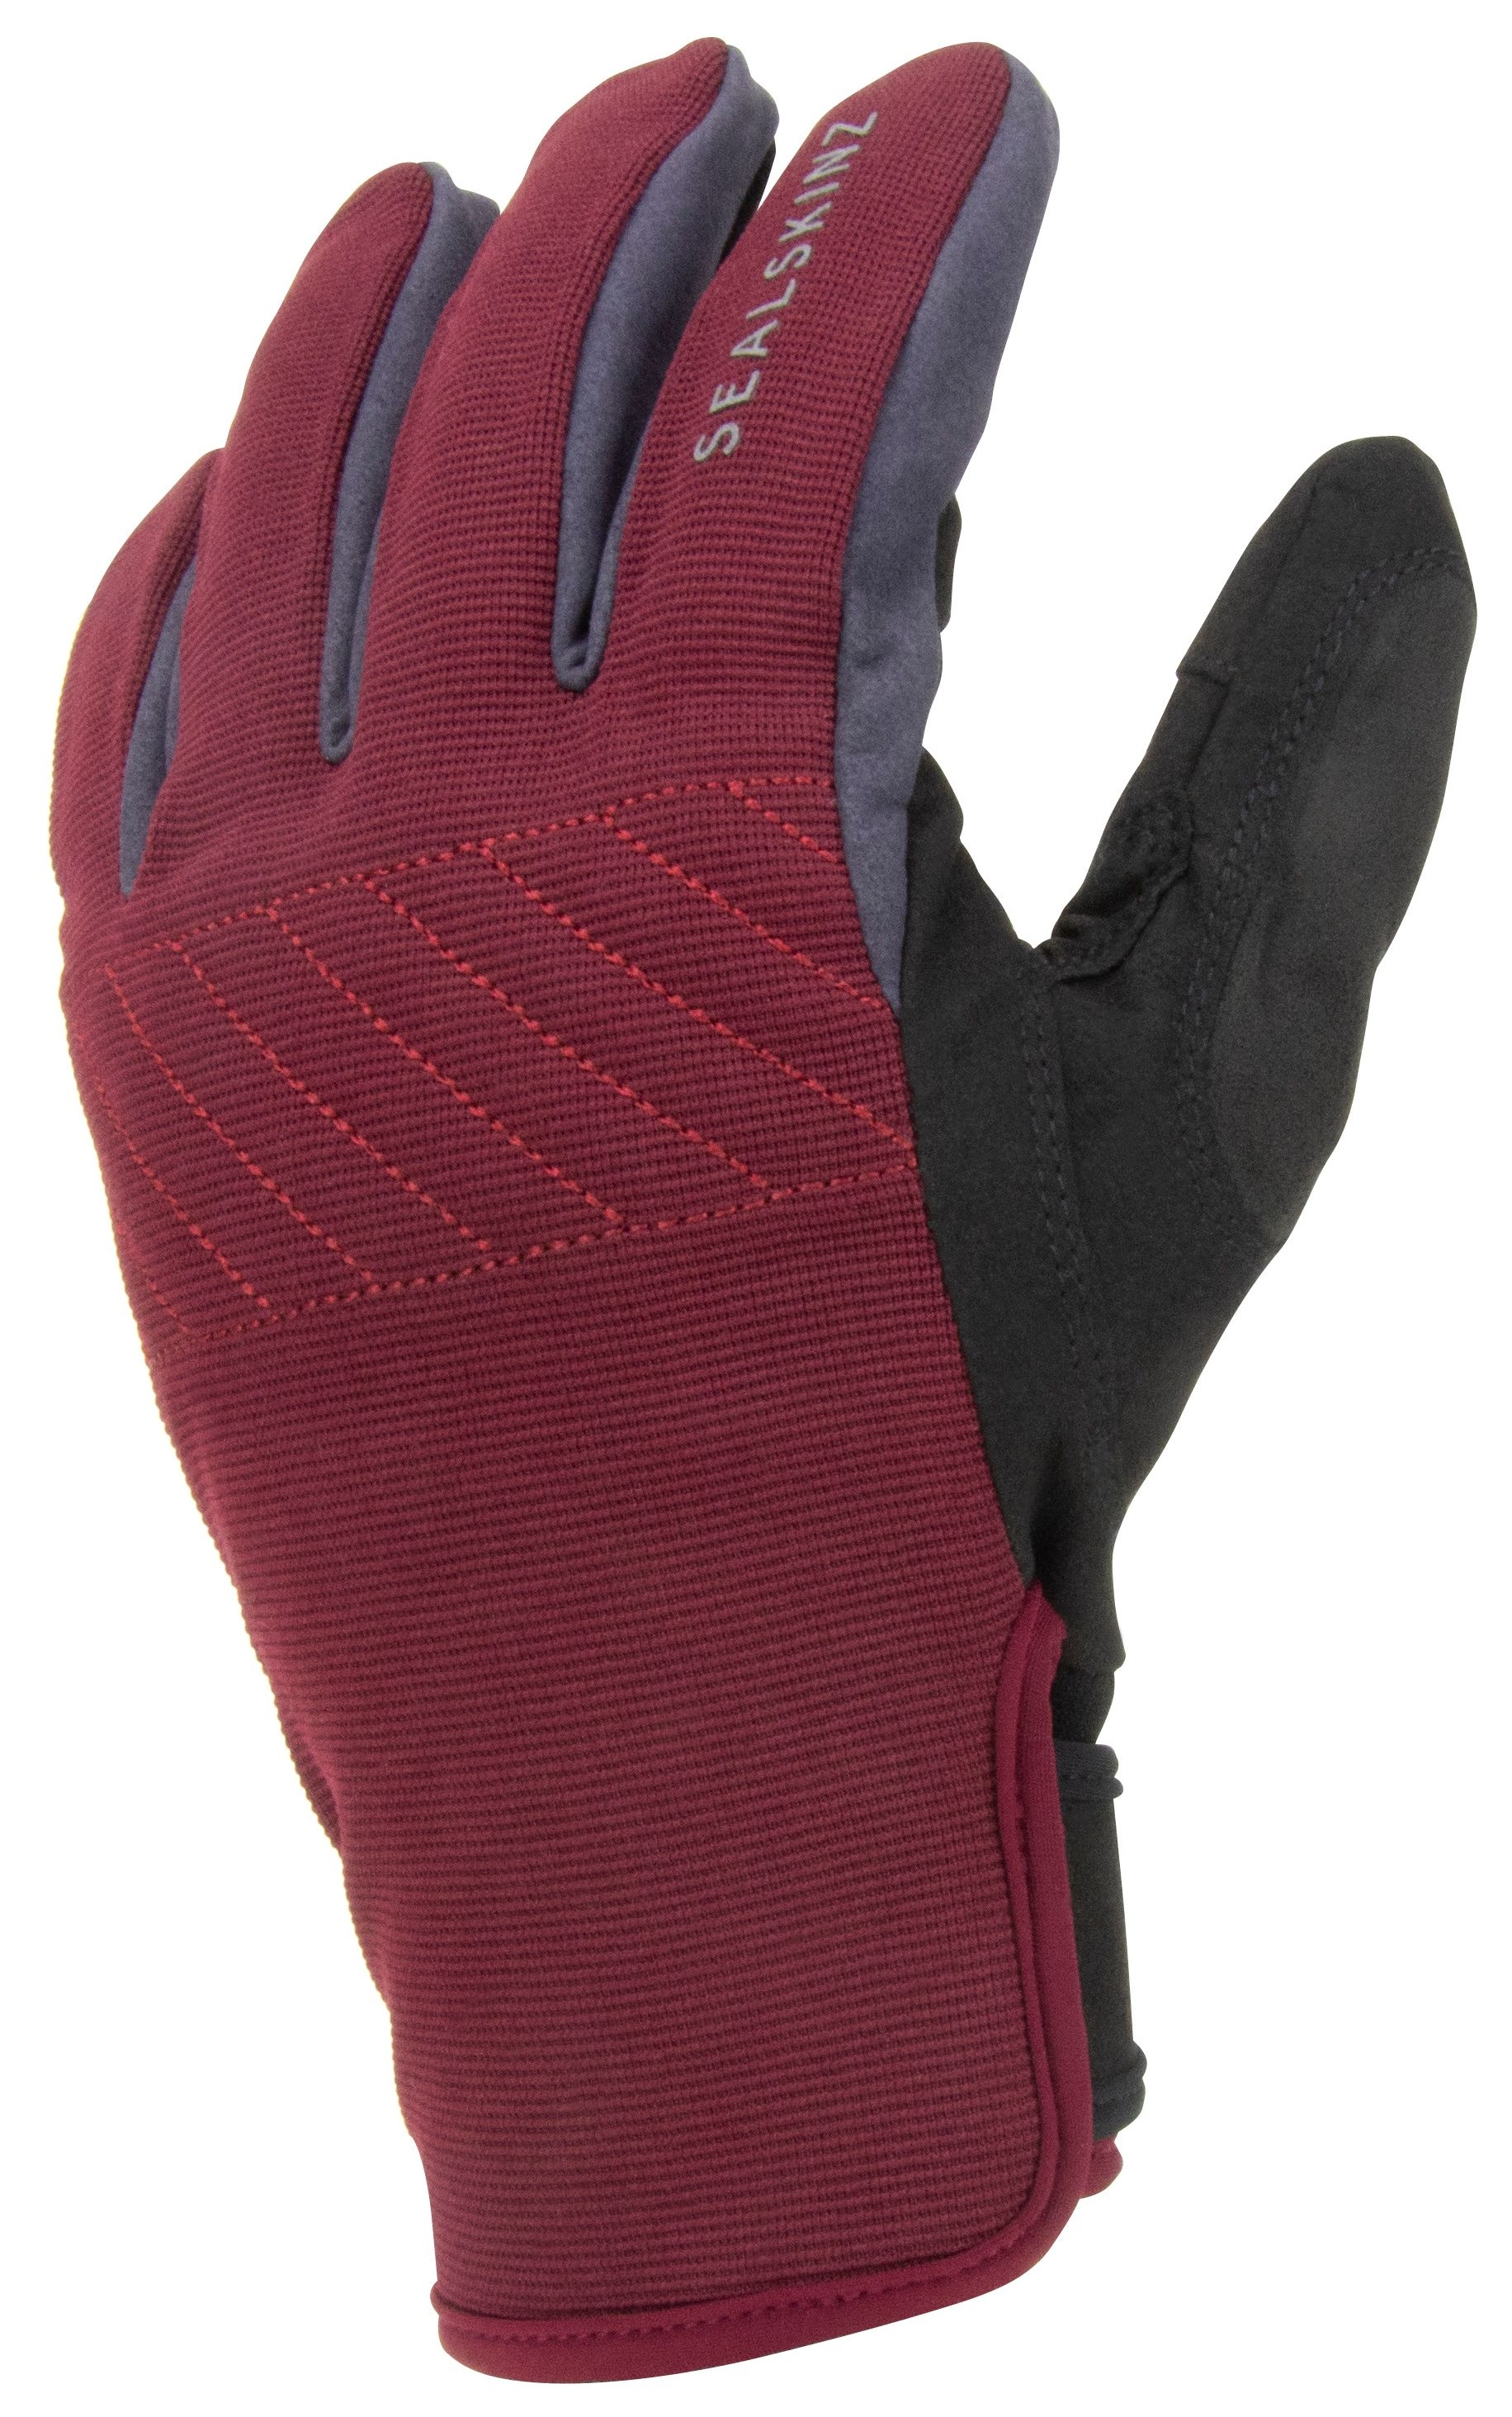 Sealskinz Waterproof All Weather Multi-activity Fusion Control Gloves Red/grey/black